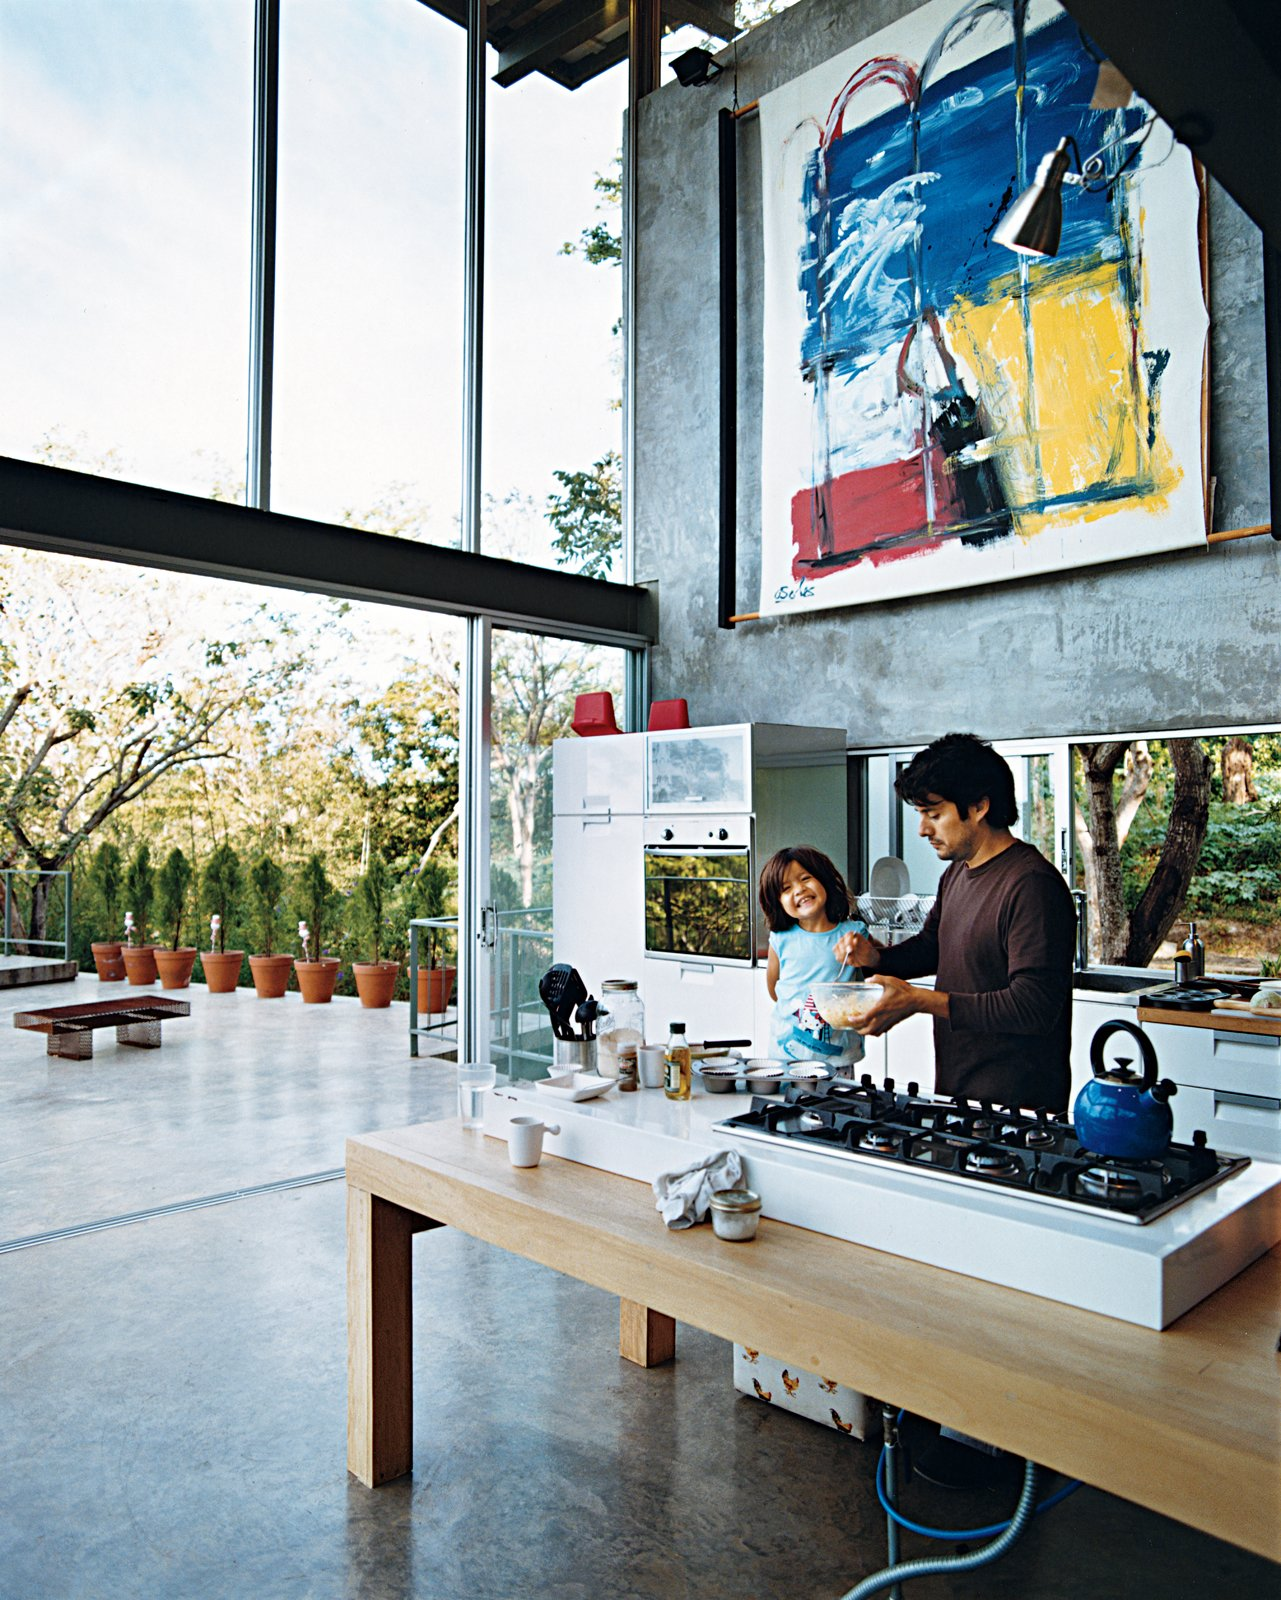 Kitchen, Wood Counter, Concrete Floor, and White Cabinet José Roberto, who says his family is always cooking something, prepares a snack with Jimena on the Ariston gas cooktop installed on the custom table.  Best Photos from Welcome to the Jungle